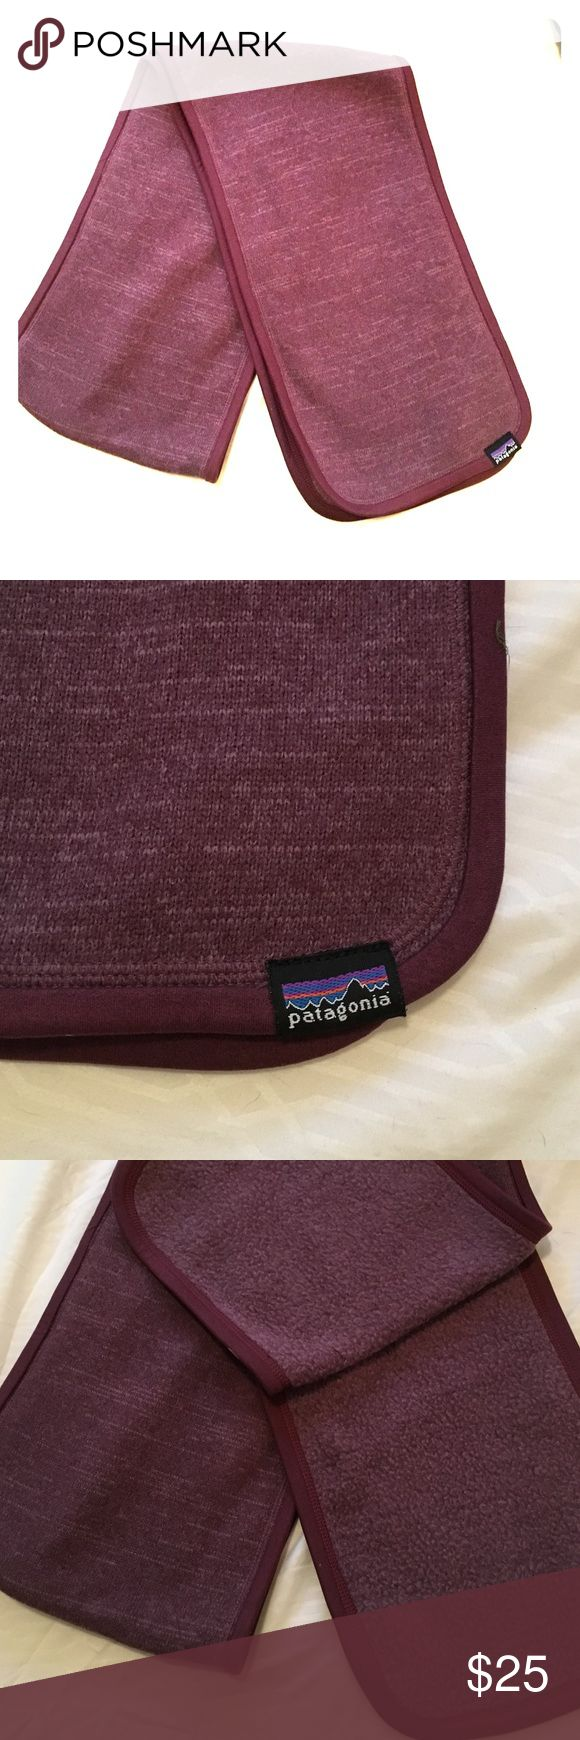 Patagonia Better Sweater Scarf Dark purple,  Patagonia, Better Sweater Scarf. Super soft, fleece on the inside. Patagonia Accessories Scarves & Wraps